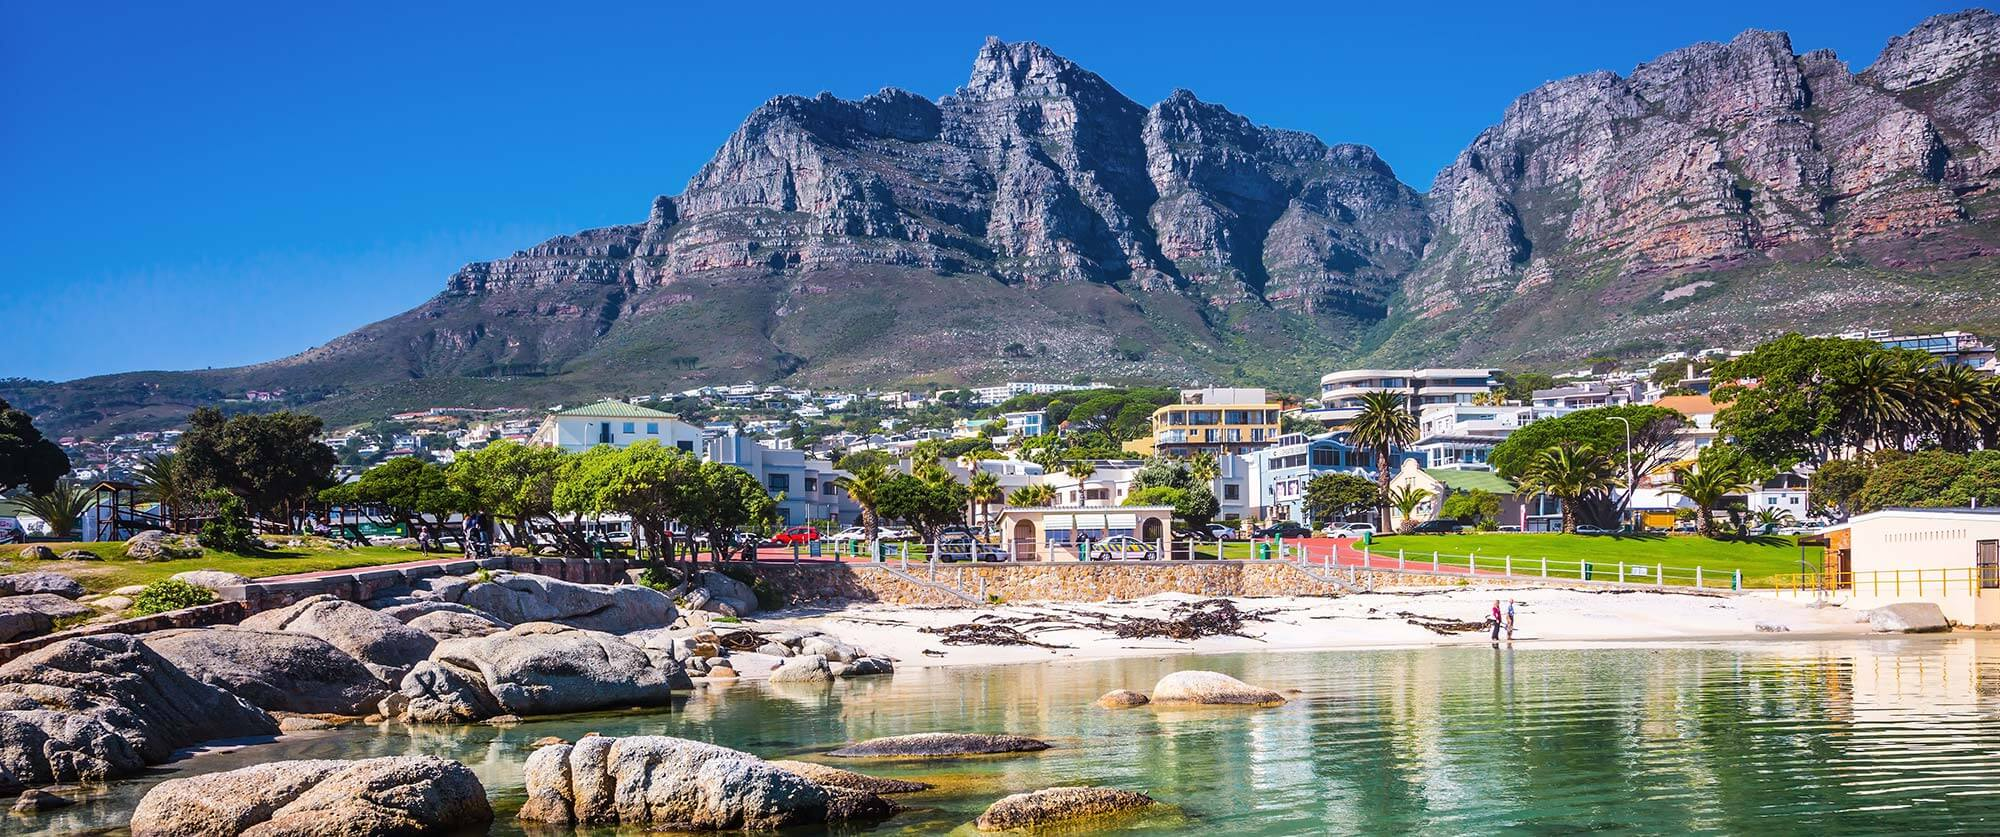 Private Cape Town and Table Mountain Tour - South Africa and Victoria Falls Package: Ultimate Luxury Adventure